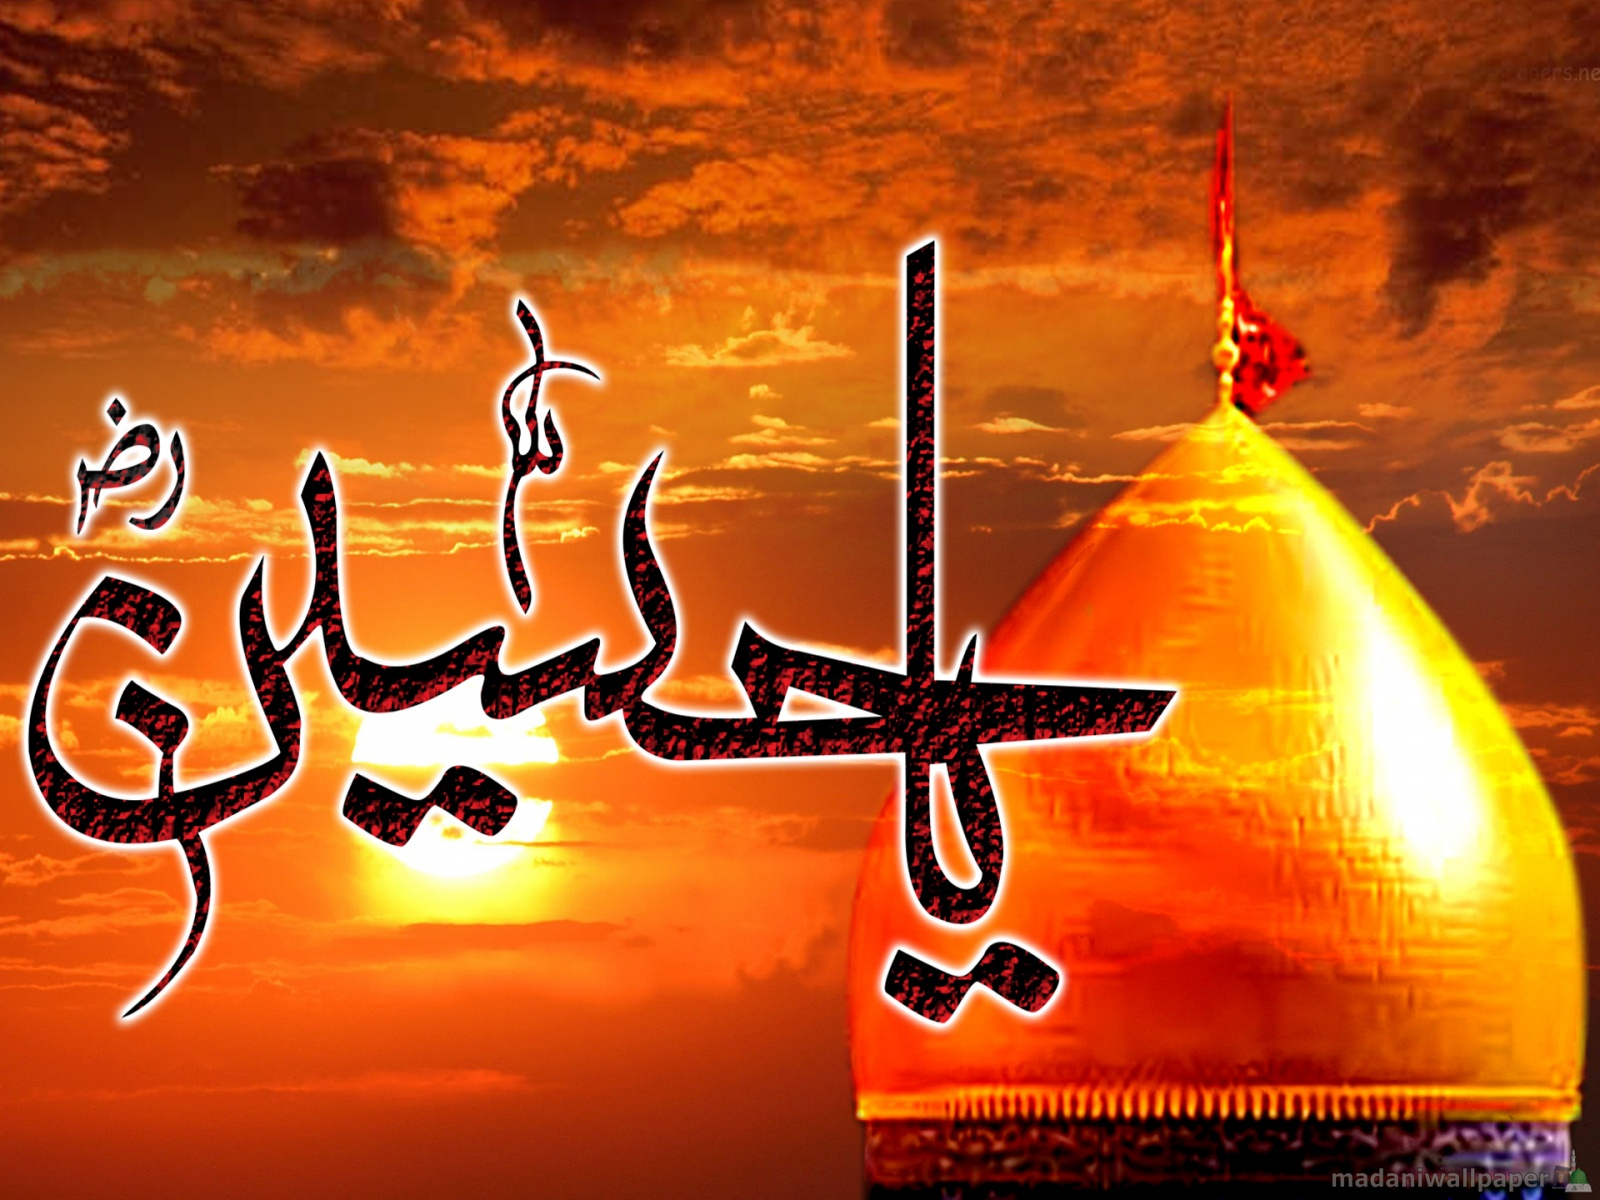 Sermon of imam hussain asws on the eve of ashura - Imam wallpaper ...